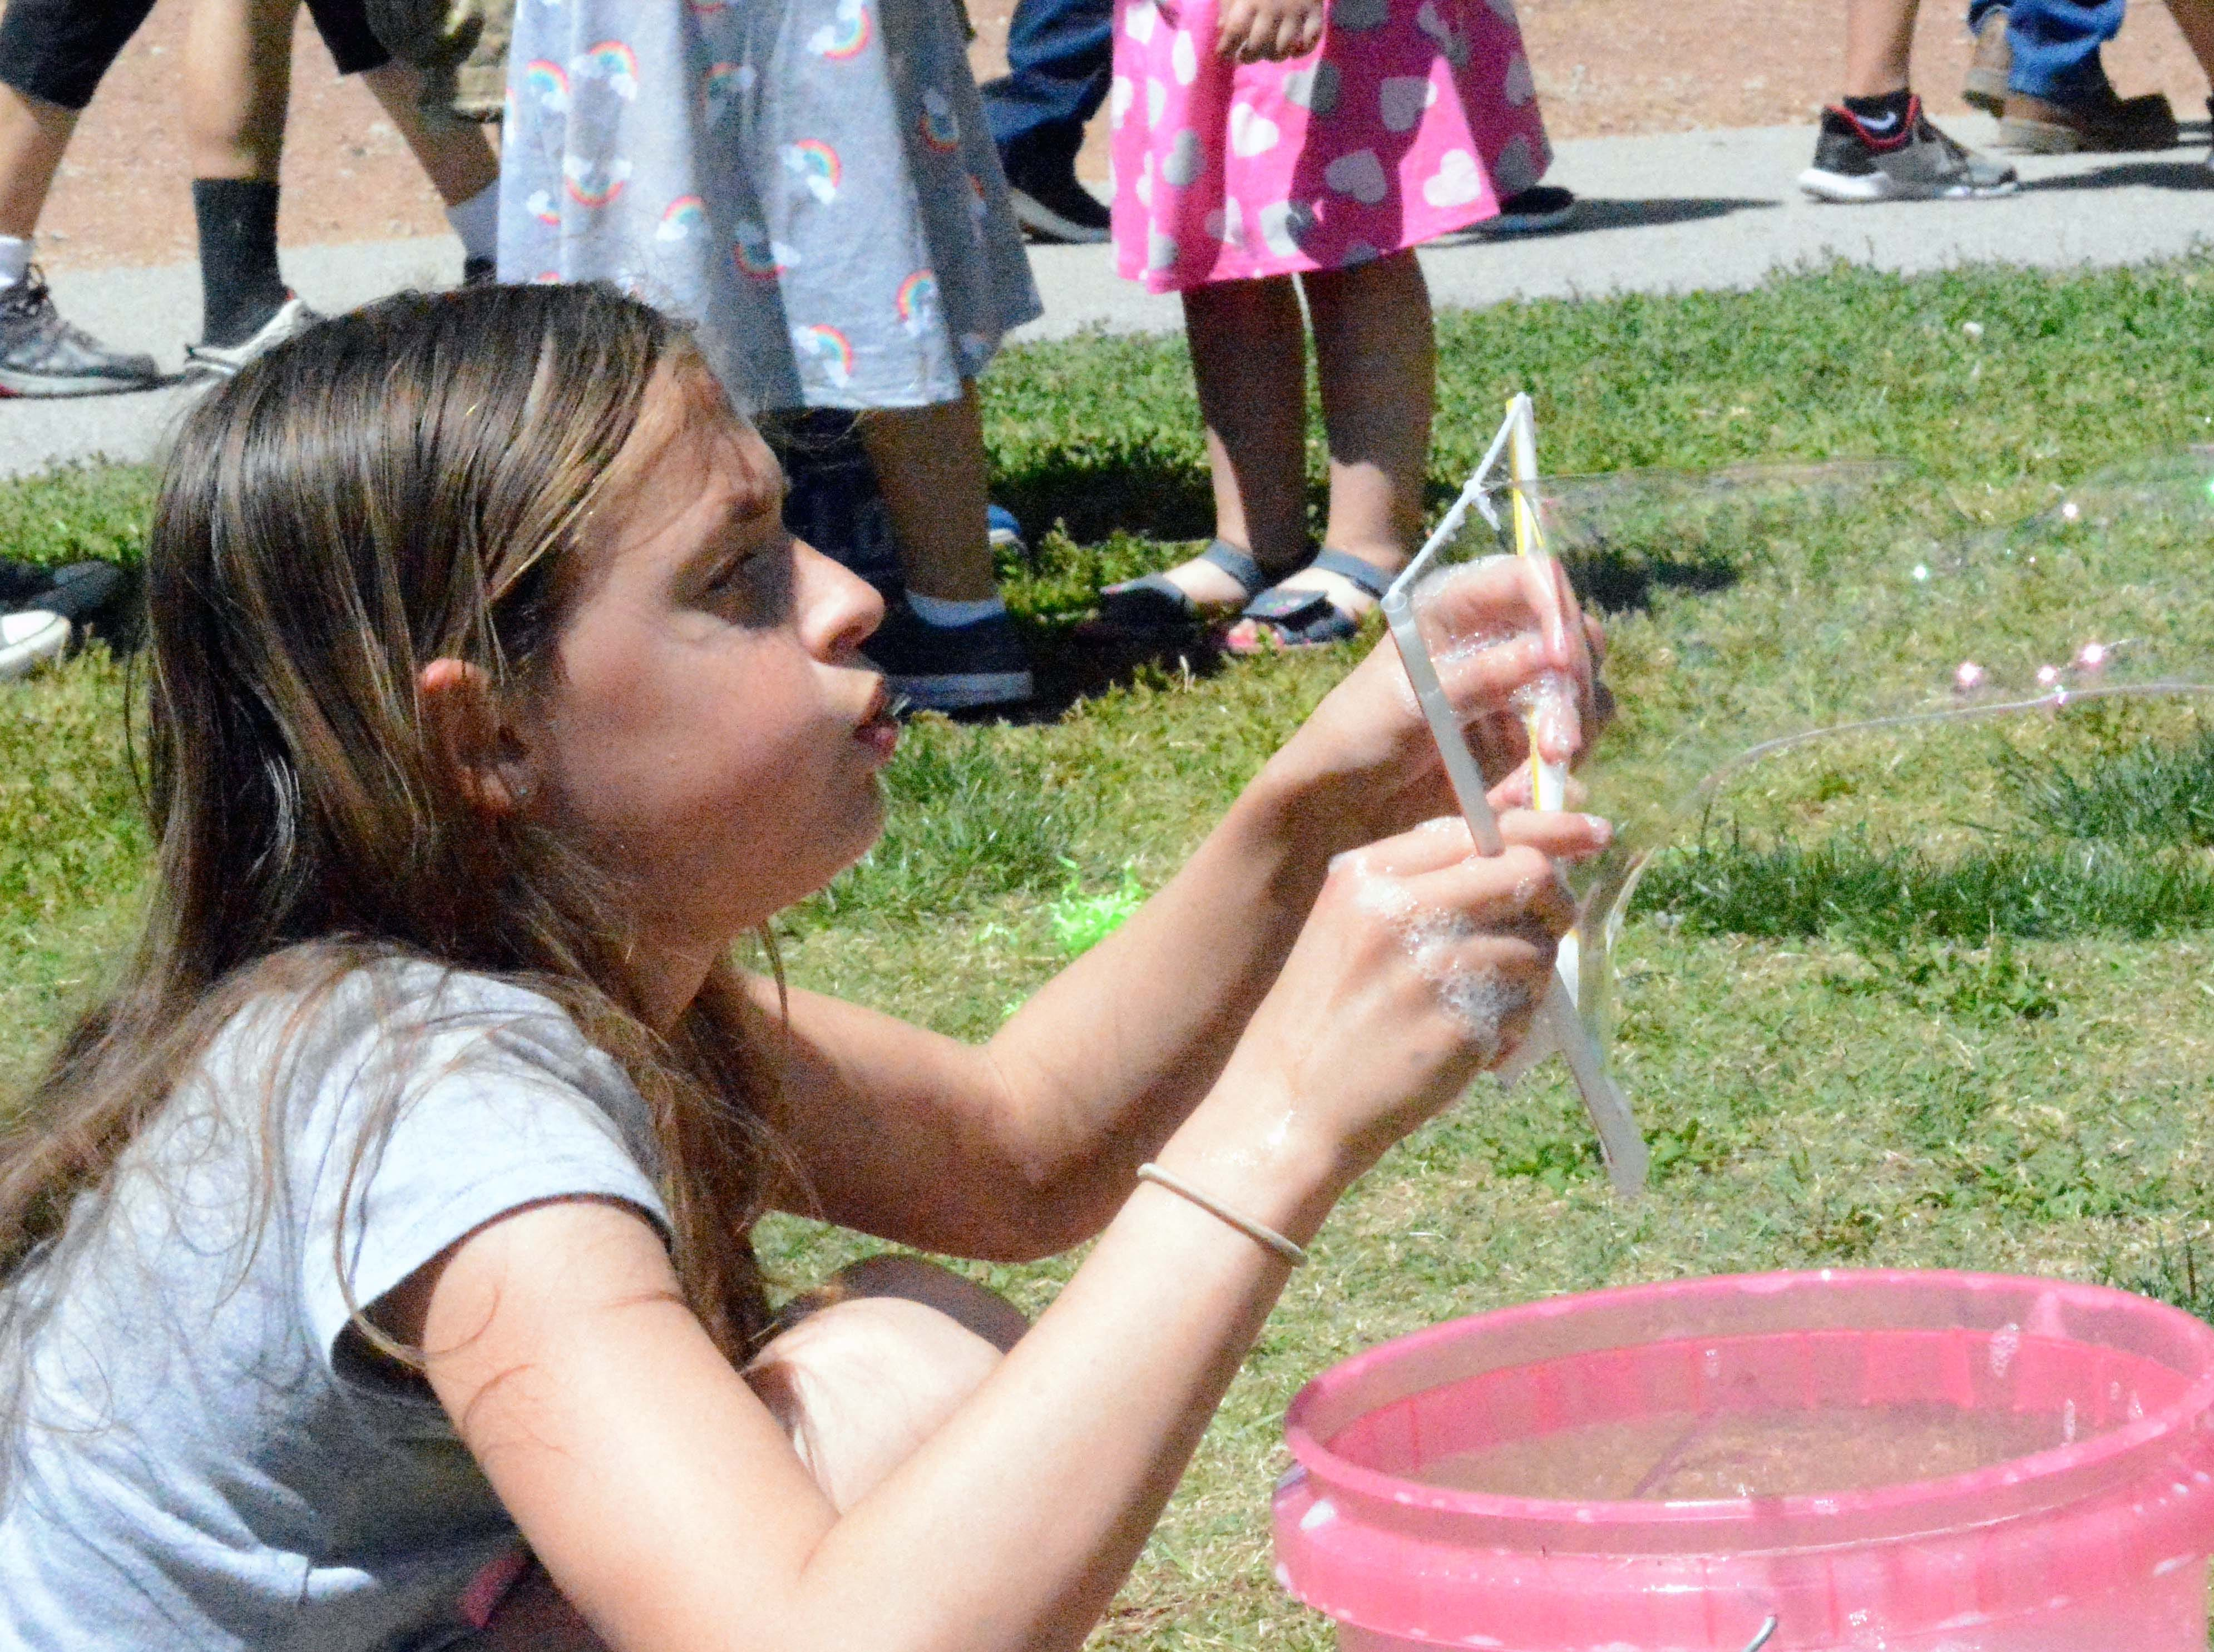 Emilee Francis takes her turn at making  bubbles during SpringFest at Young Park on Saturday, April 20, 2019.